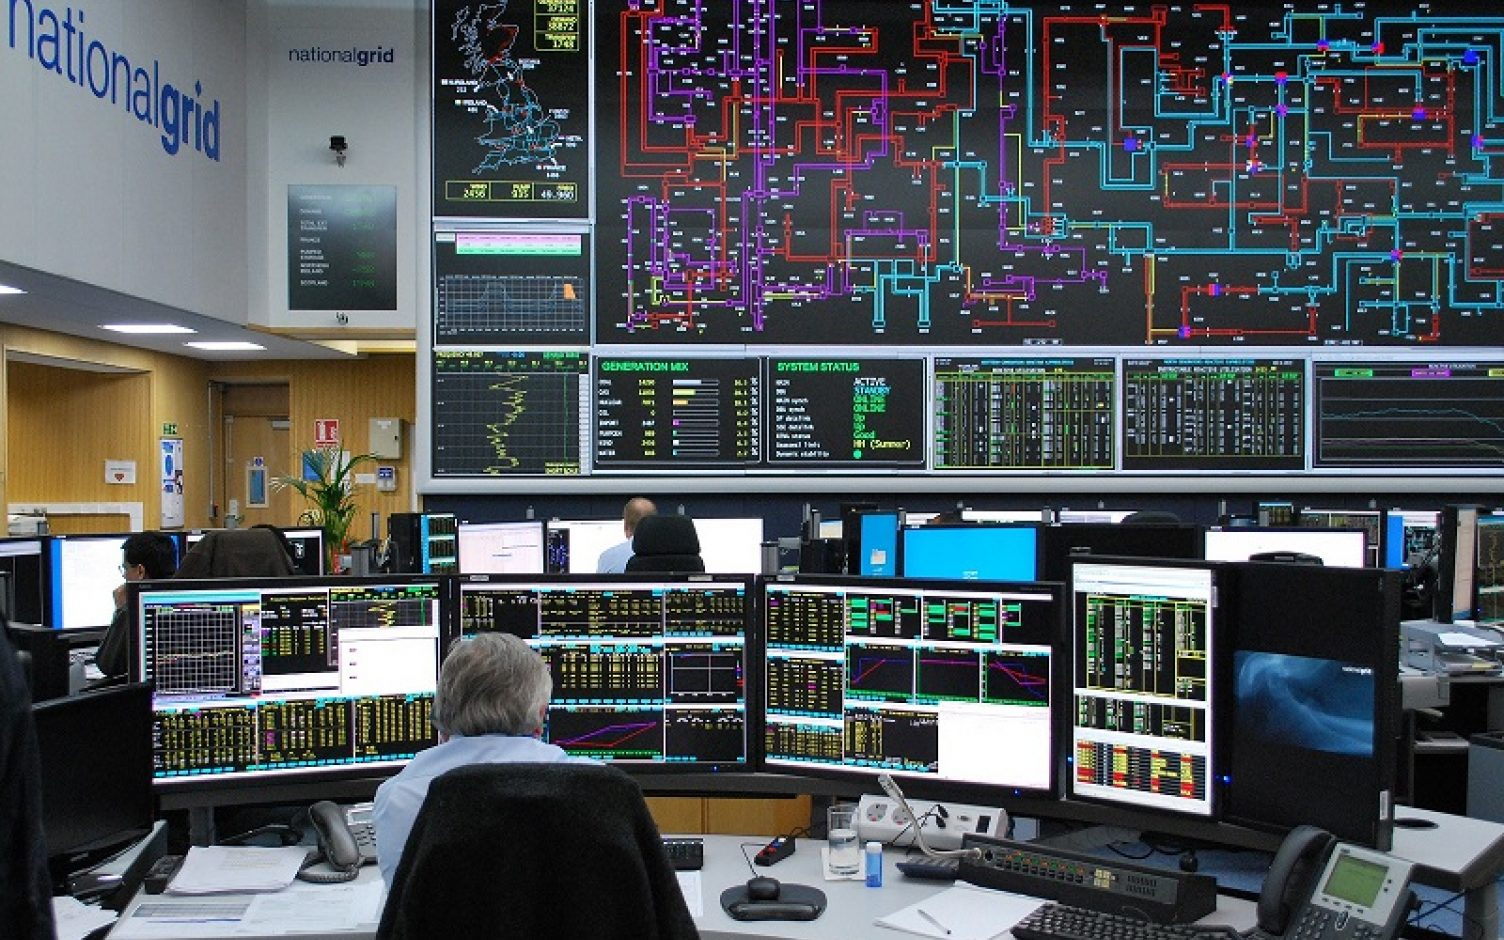 Image: National Grid.